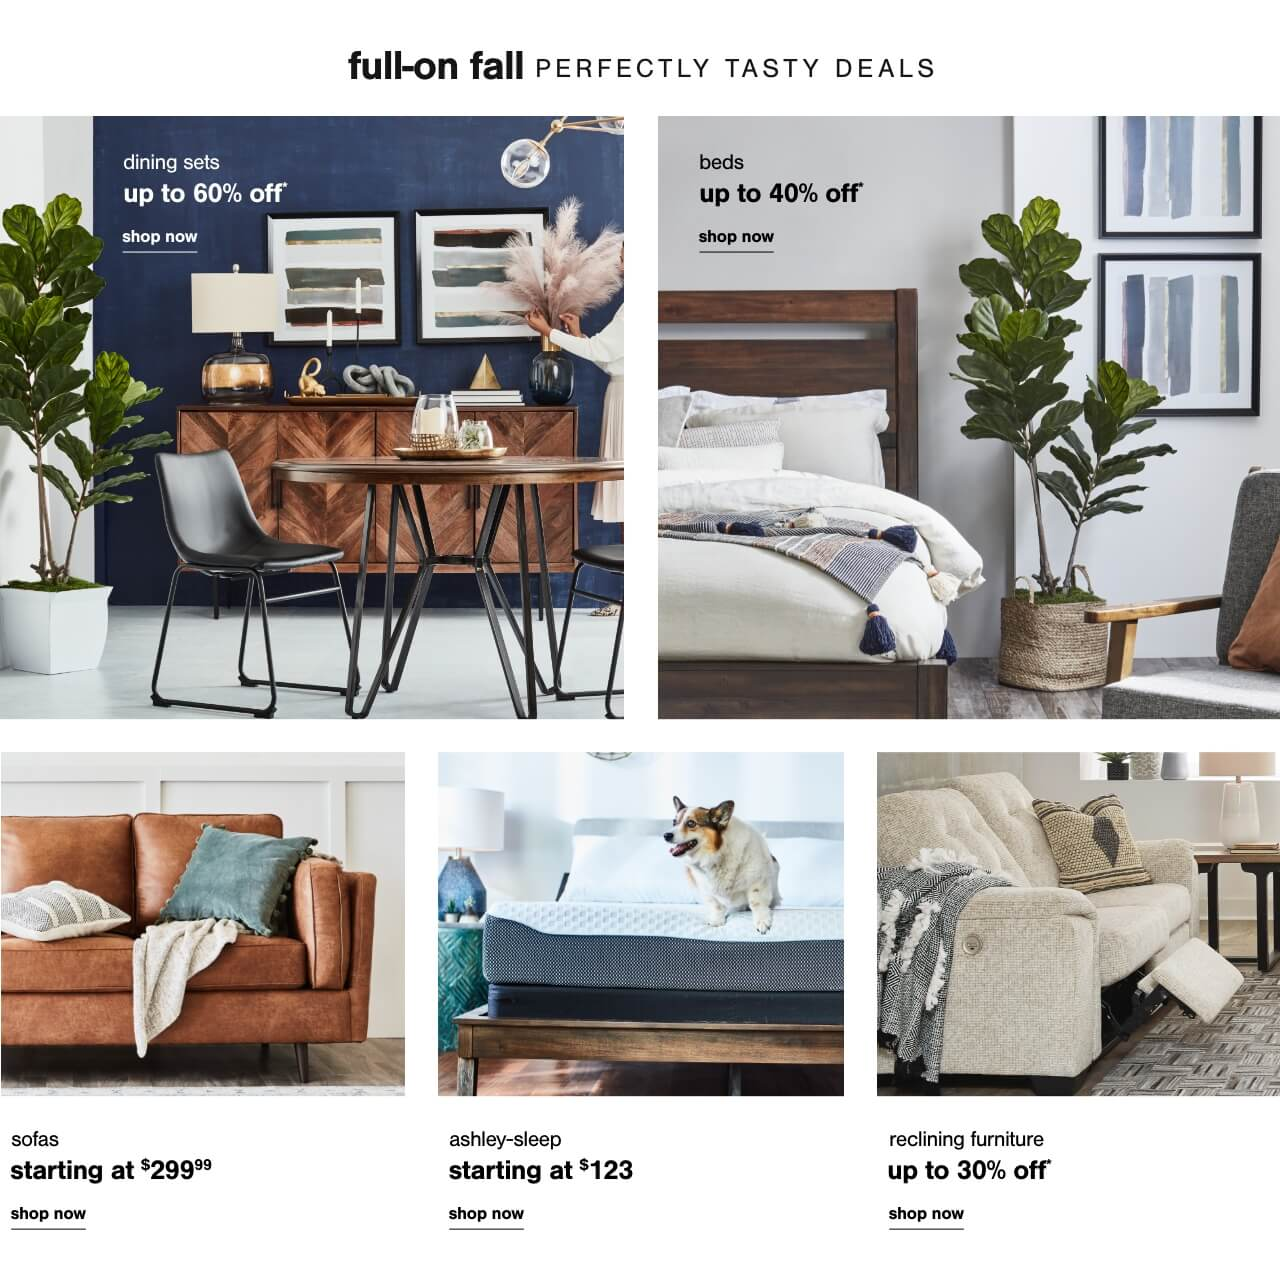 The Whole Package: Dining Sets Up to 60% Off         ,  Bed Savings that you could only Dream Of!- Shop Beds Up to 40% Off        , Sofas starting at $299.99  , Reclining Furniture Up To 35% Off, Reclining Furniture Up To 30% Off